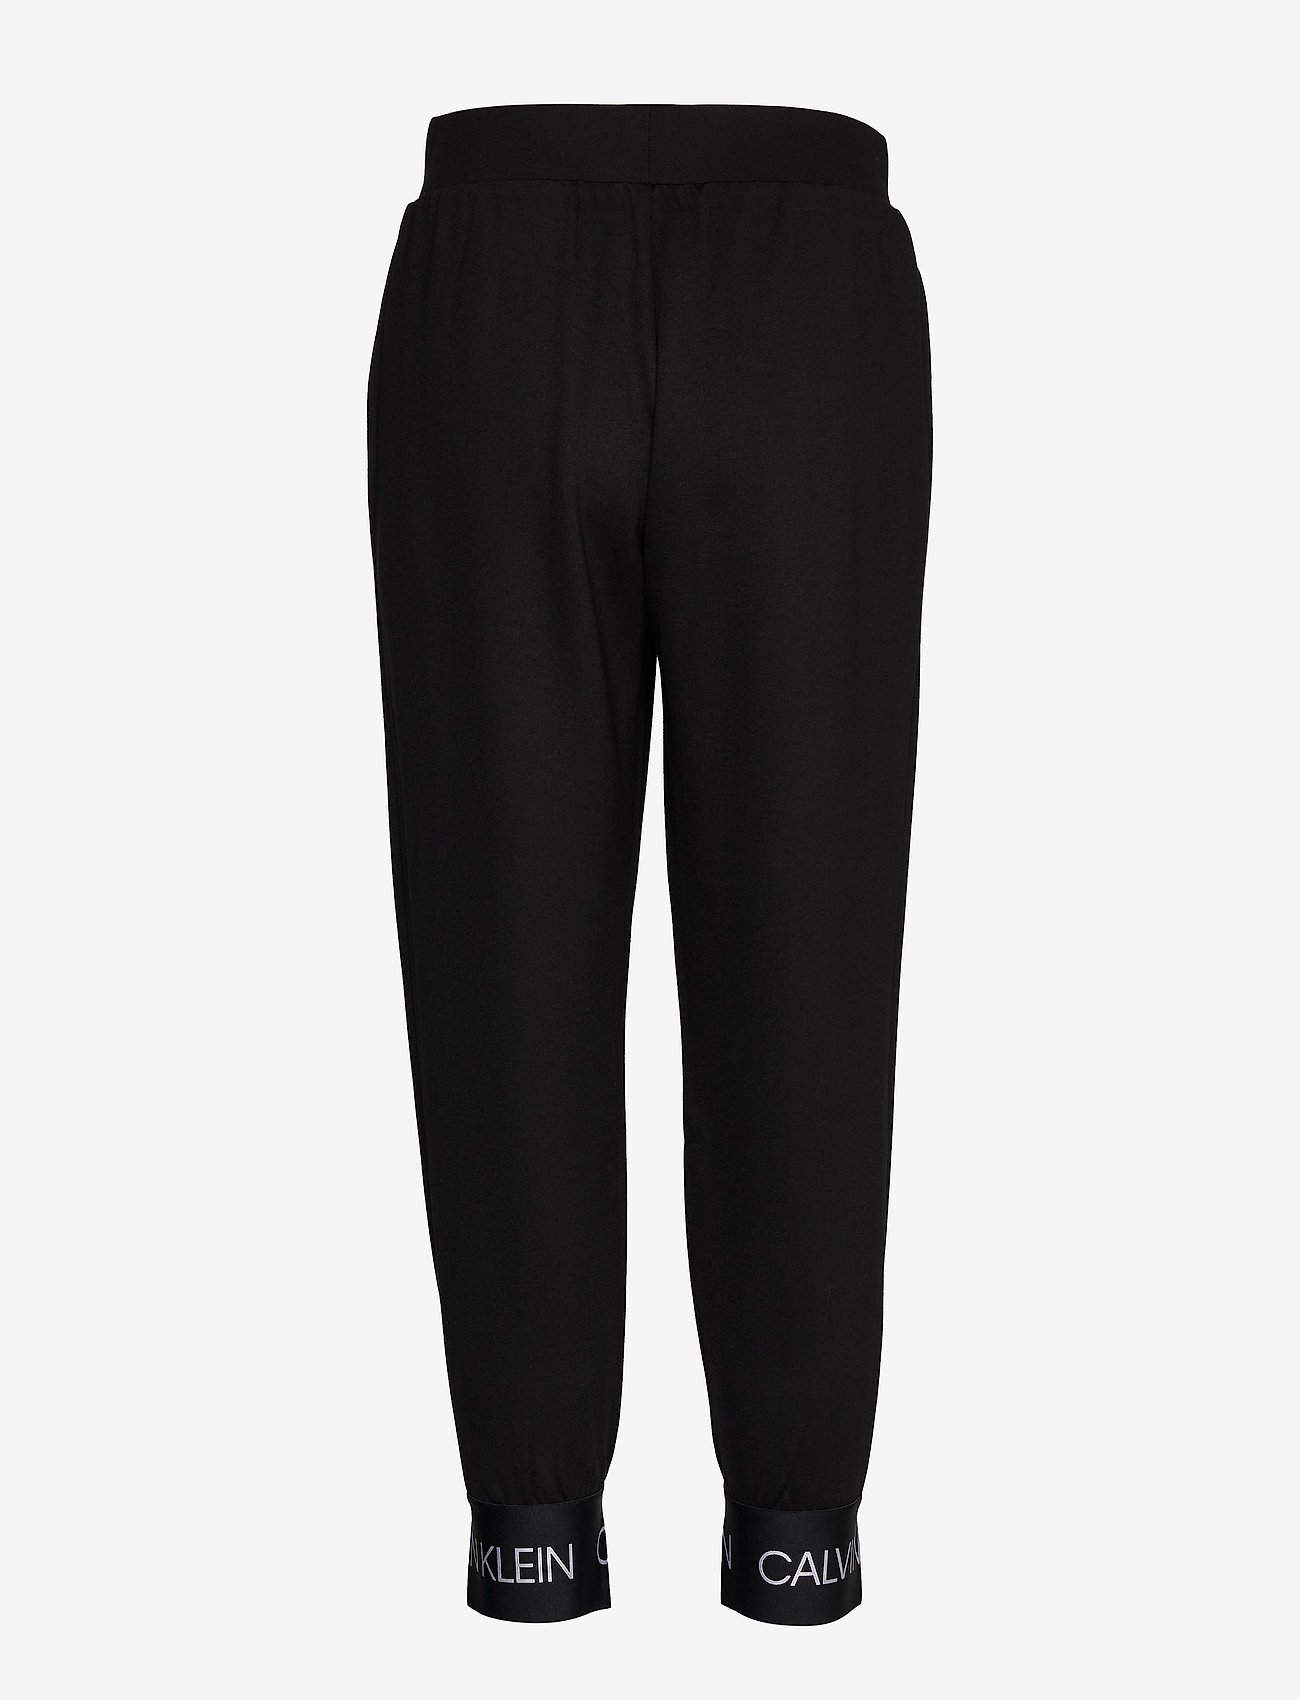 Calvin Klein Performance - KNIT PANTS - sports pants - ck black - 1